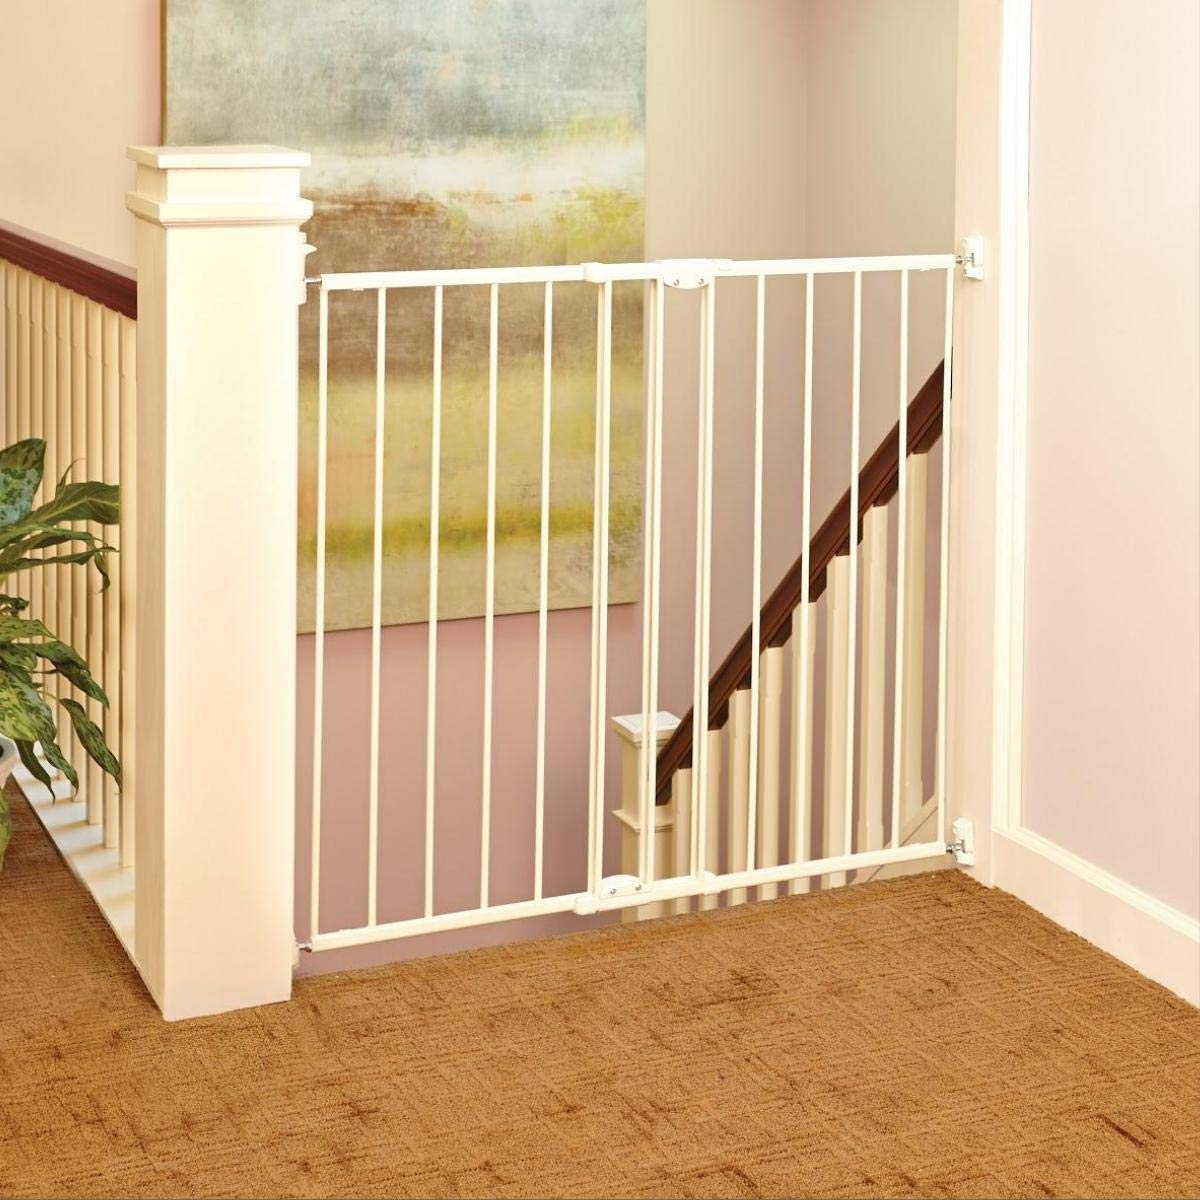 North States 47.85'' Tall Easy Swing and Lock Baby Gate: Ideal for stairways, swings to self-lock. Hardware mount. Fits 28.68''-47.85'' wide (36'' tall, Soft White) by North States